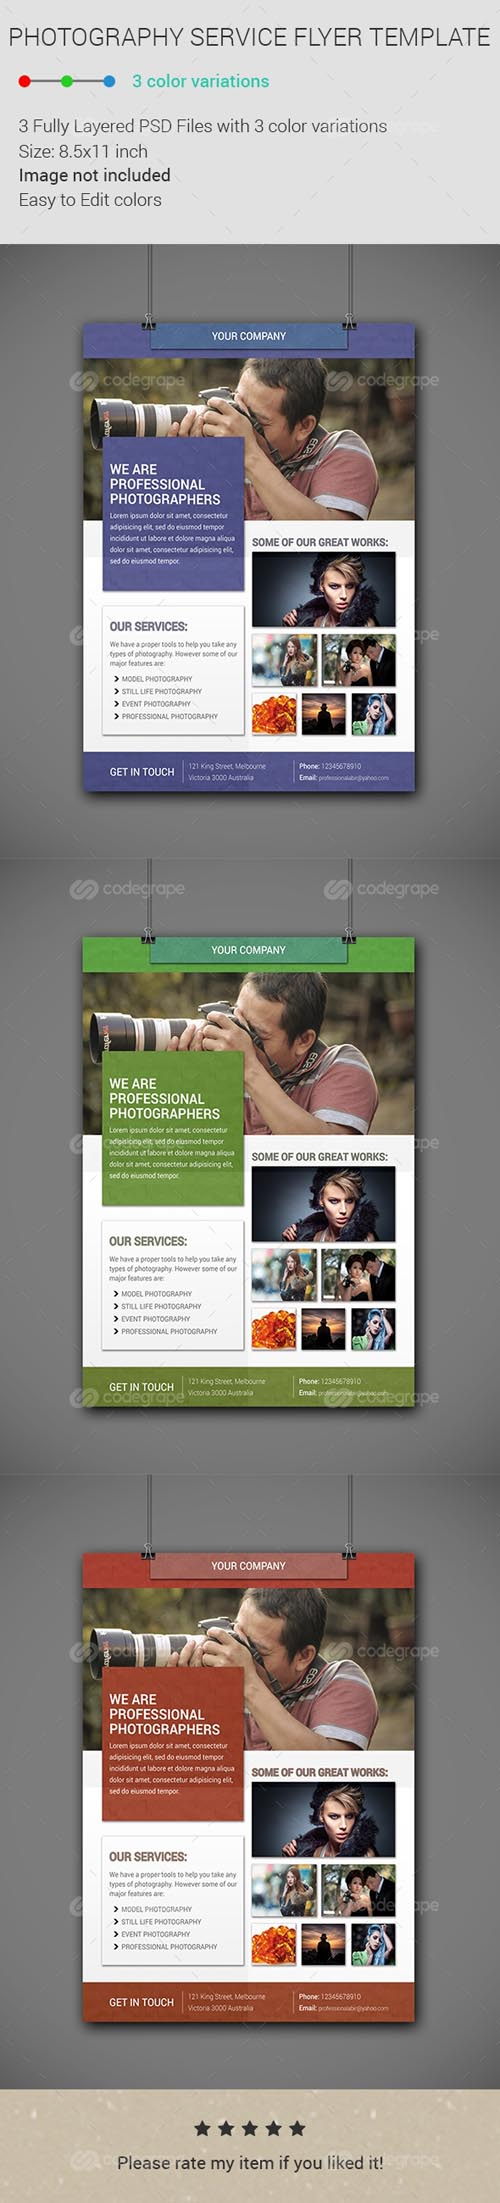 PSD - Photography Service Flyer Template